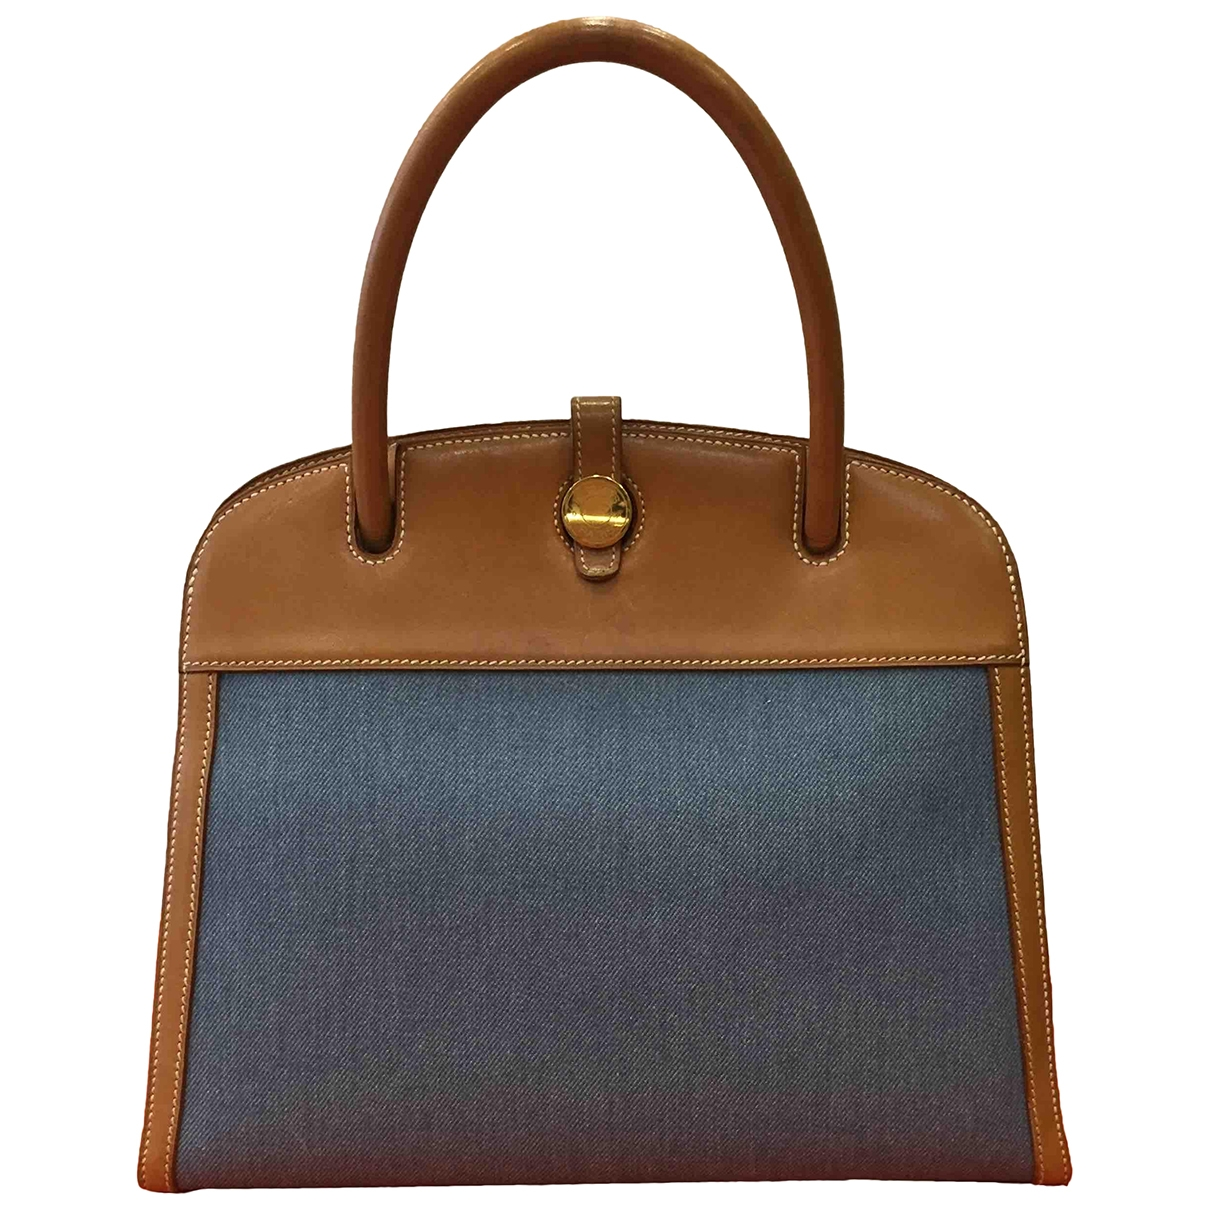 Hermes \N Handtasche in Denim - Jeans